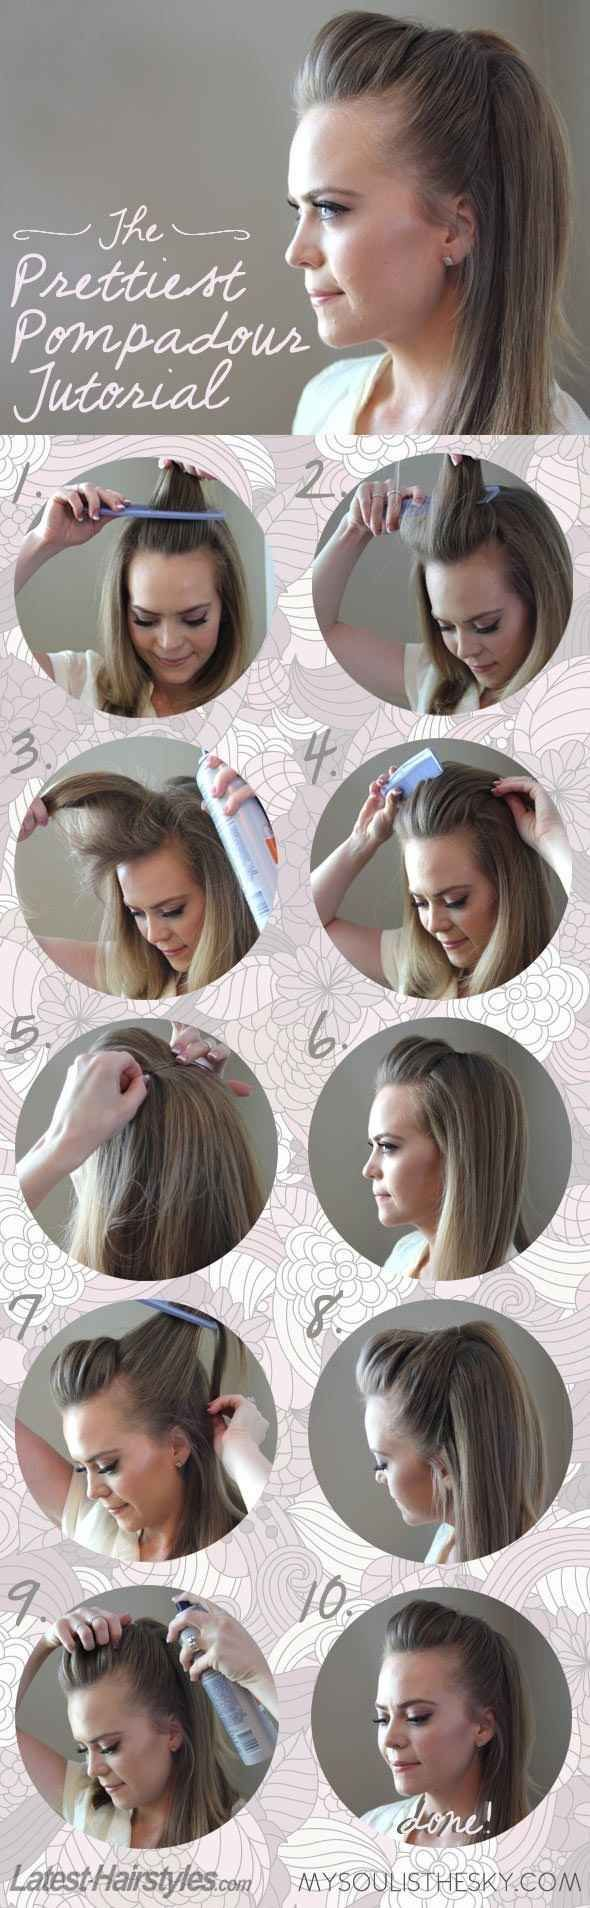 best quick hair images on pinterest casual hairstyles braid